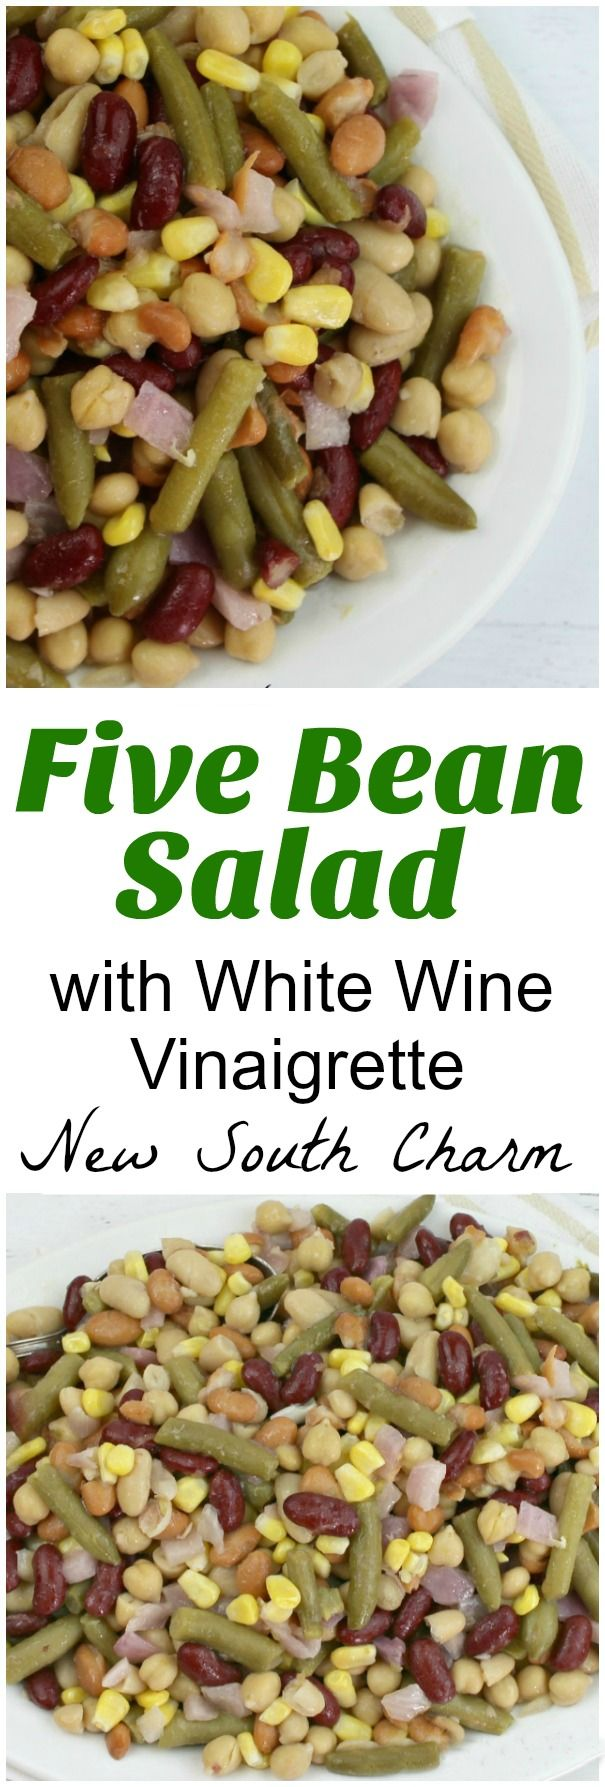 Looking for a fresh, easy side Five Bean Salad with White Wine Vinaigrette is perfect for grilled chicken or steaks but it's a great alternative to fries or chips with burgers too.